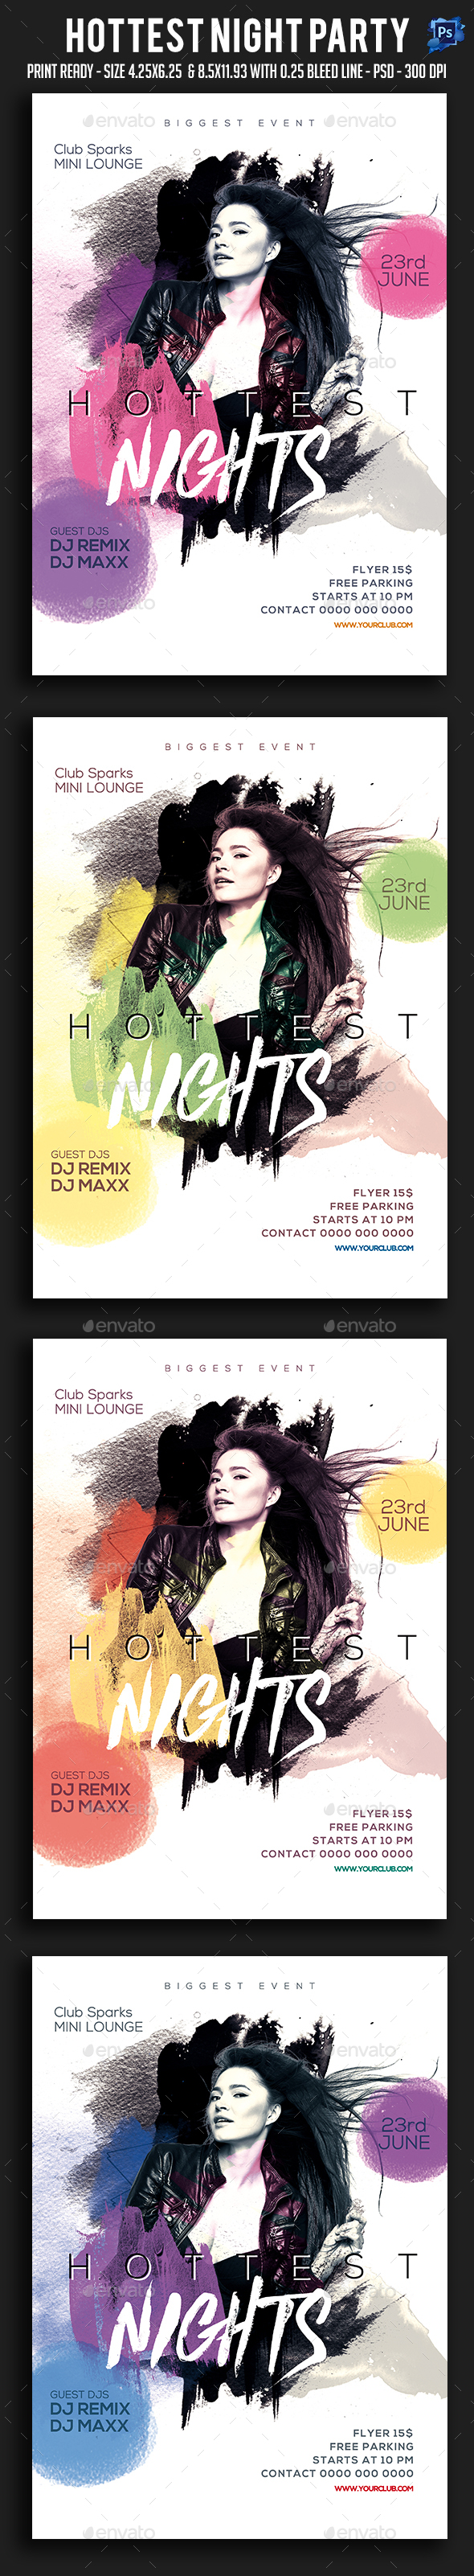 Hottest Night Party Flyer - Clubs & Parties Events